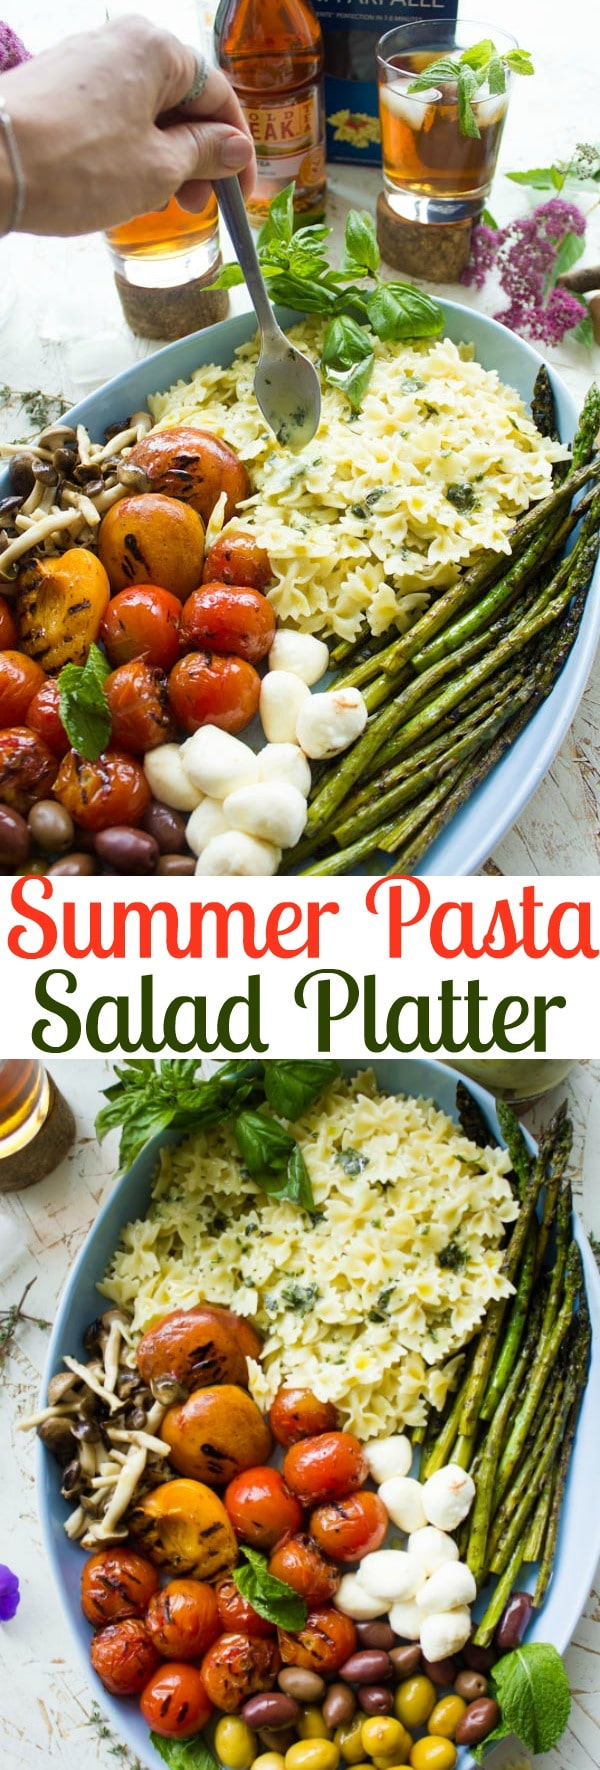 This easy summer pasta salad with mozzarella, grilled vegetables, fresh fruit and salty olives is the perfect healthy salad for big crowds. Serve it warm or cold and drizzle it with my zesty and bright Sweet Tea Dressing! #saladrecipes, #saladplatter, #pastasalad, #bbqrecipes